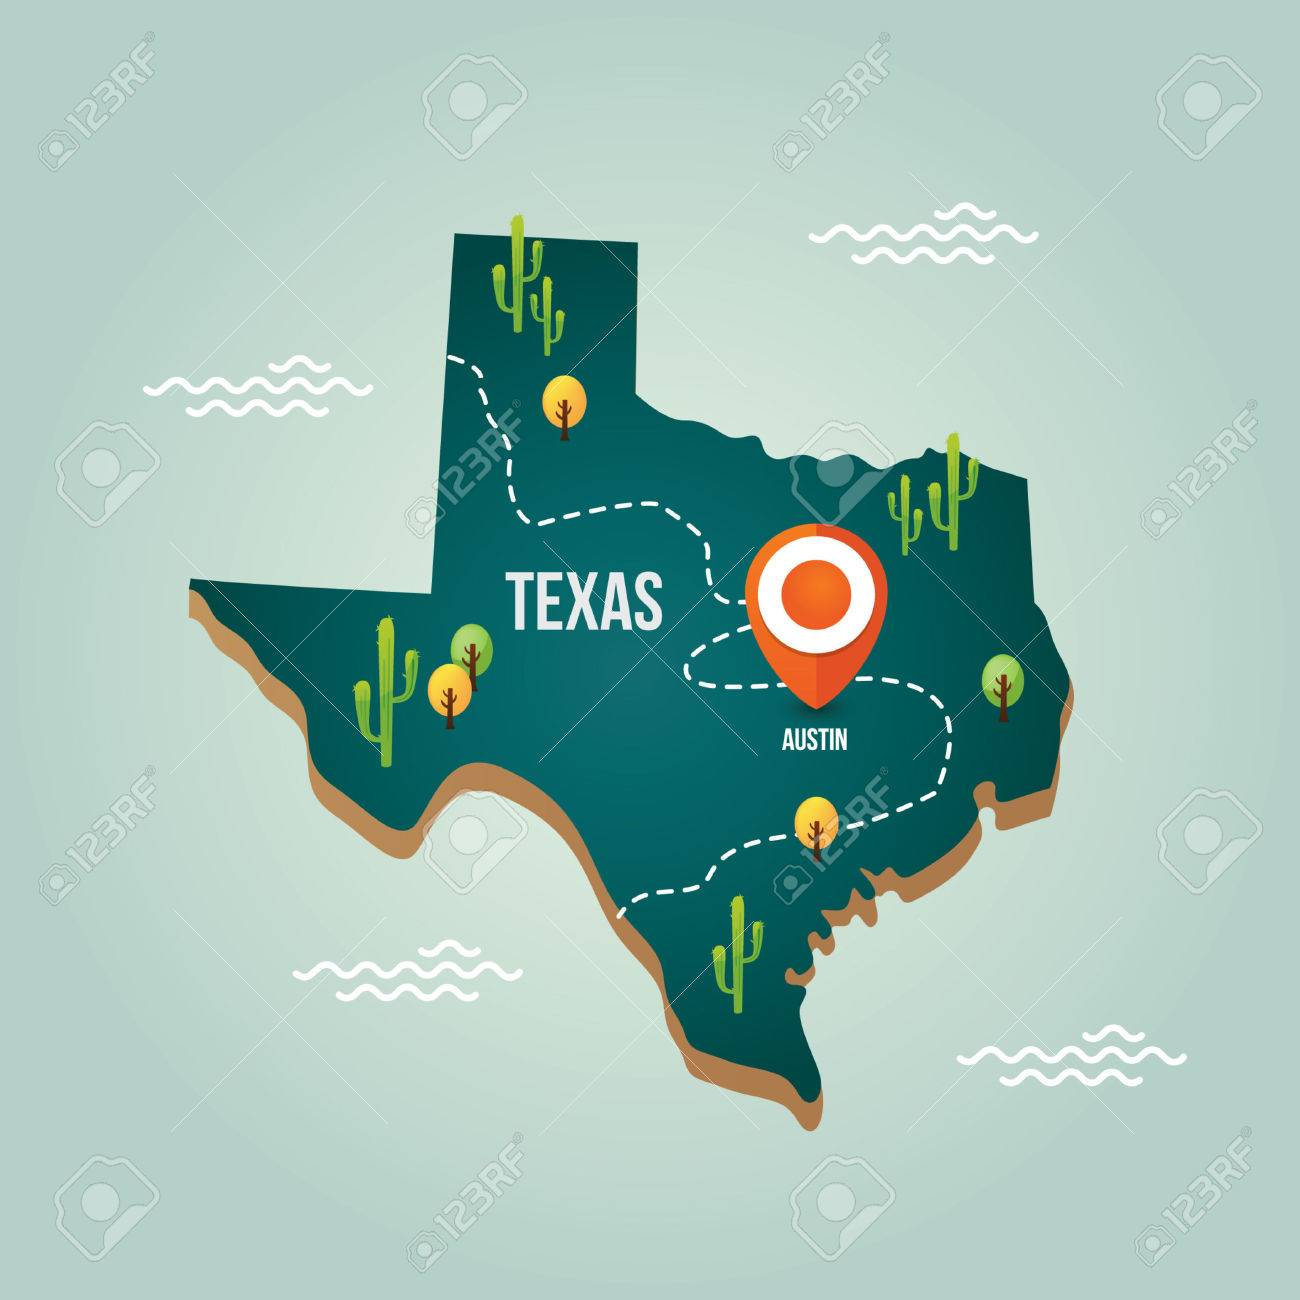 Texas Map With Capital City Royalty Free Cliparts Vectors And